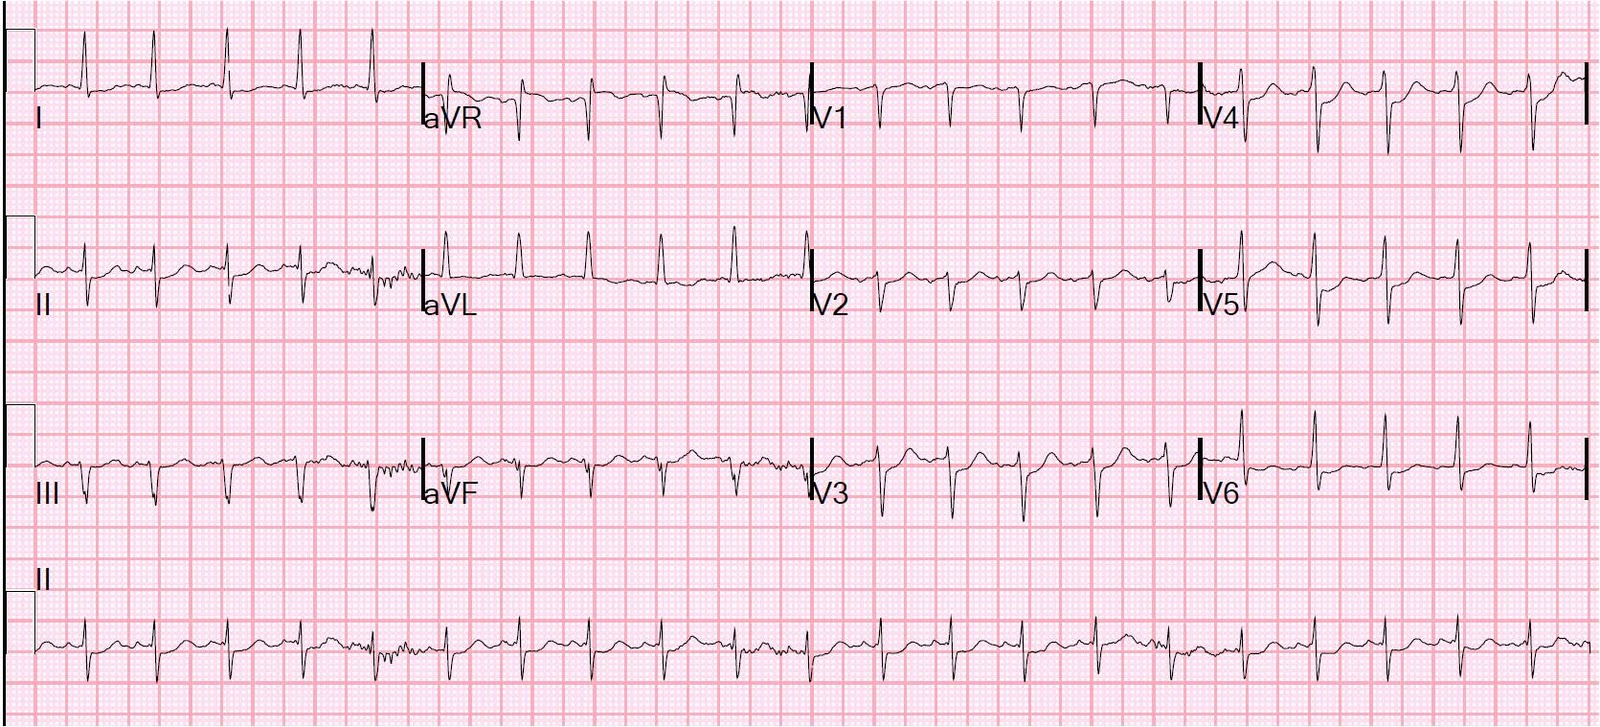 arrived  He arrived in the ED awake  The following ECG was recordedVentricular Fibrillation Ecg